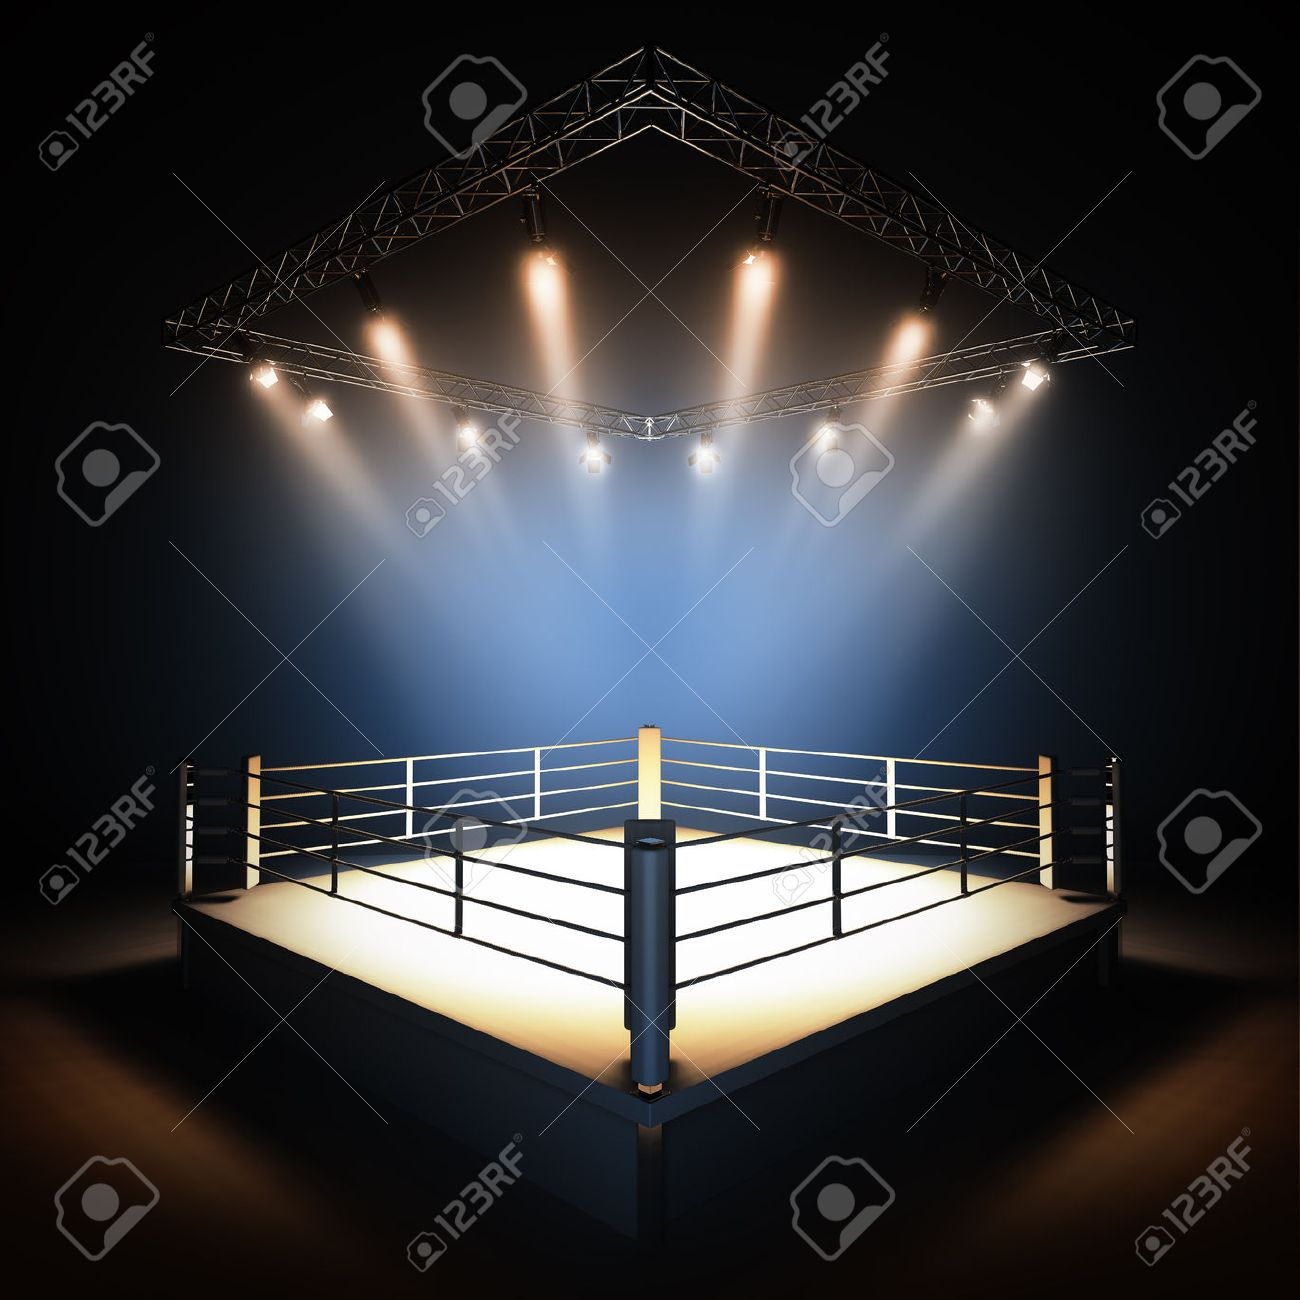 A 3d render illustration of empty professional boxing ring with illumination by spotlights. - 46948297